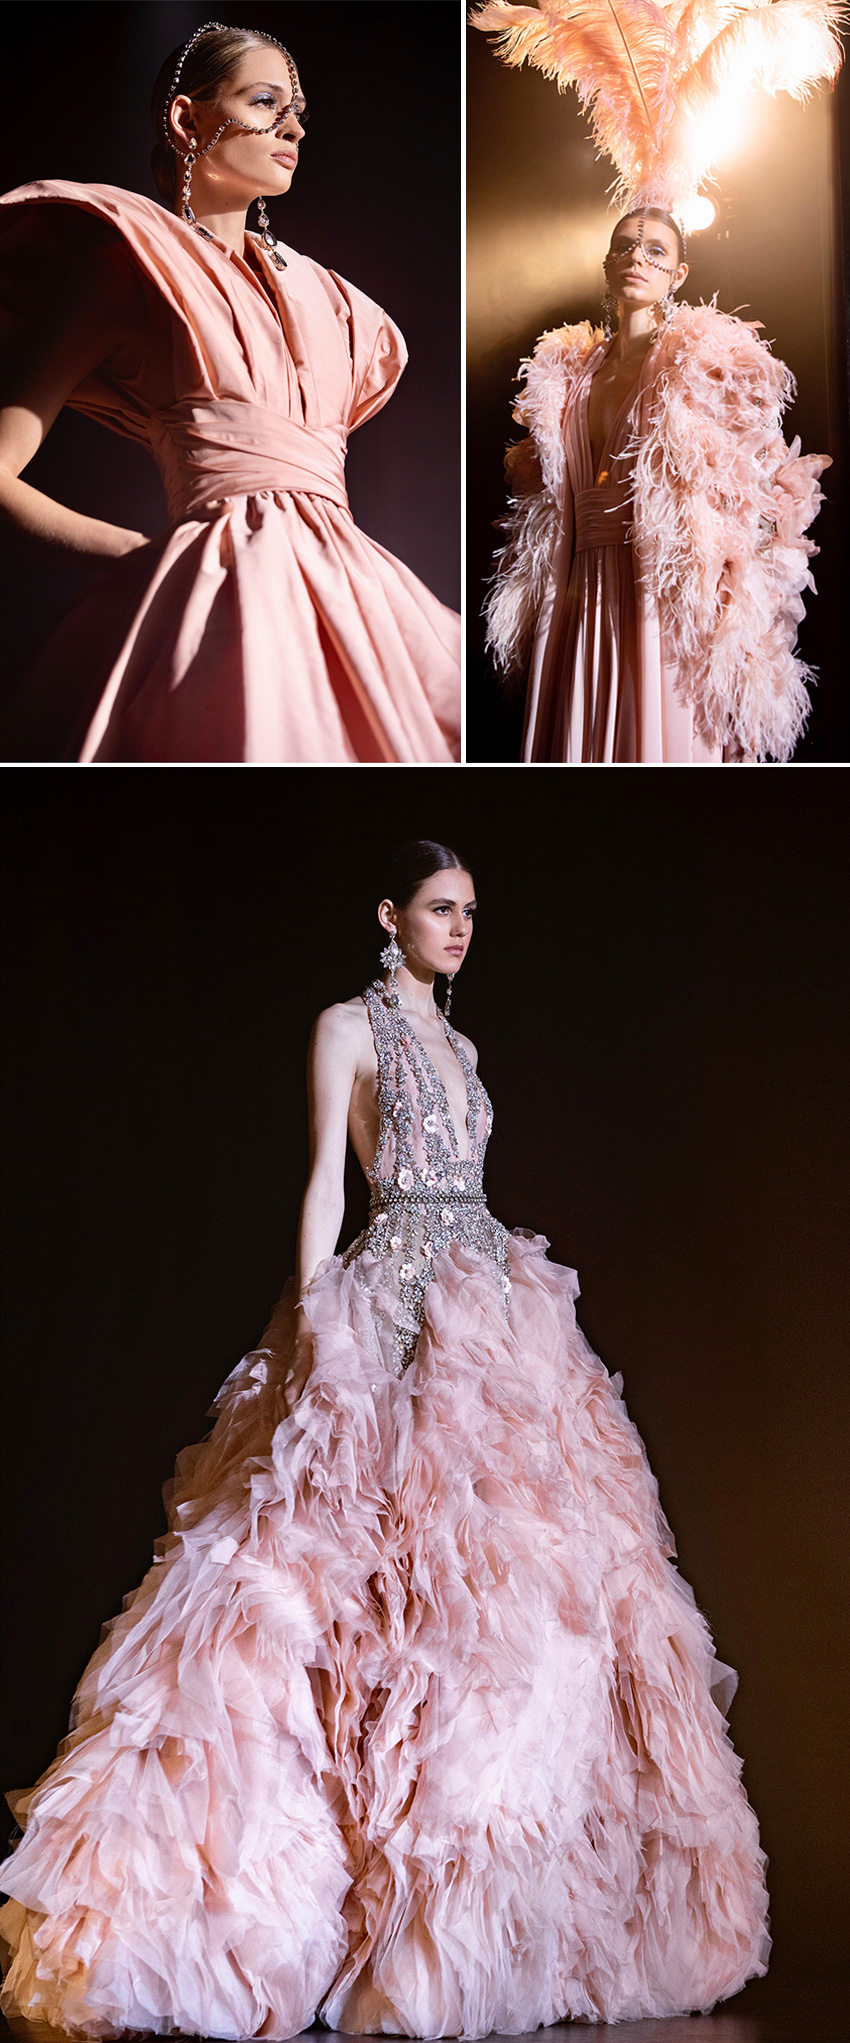 Elie Saab haute Couture Spring Summer 2021 includes chandelier earrings and stellar headpieces with dramatic feather featured in Perfect Wedding Magazine